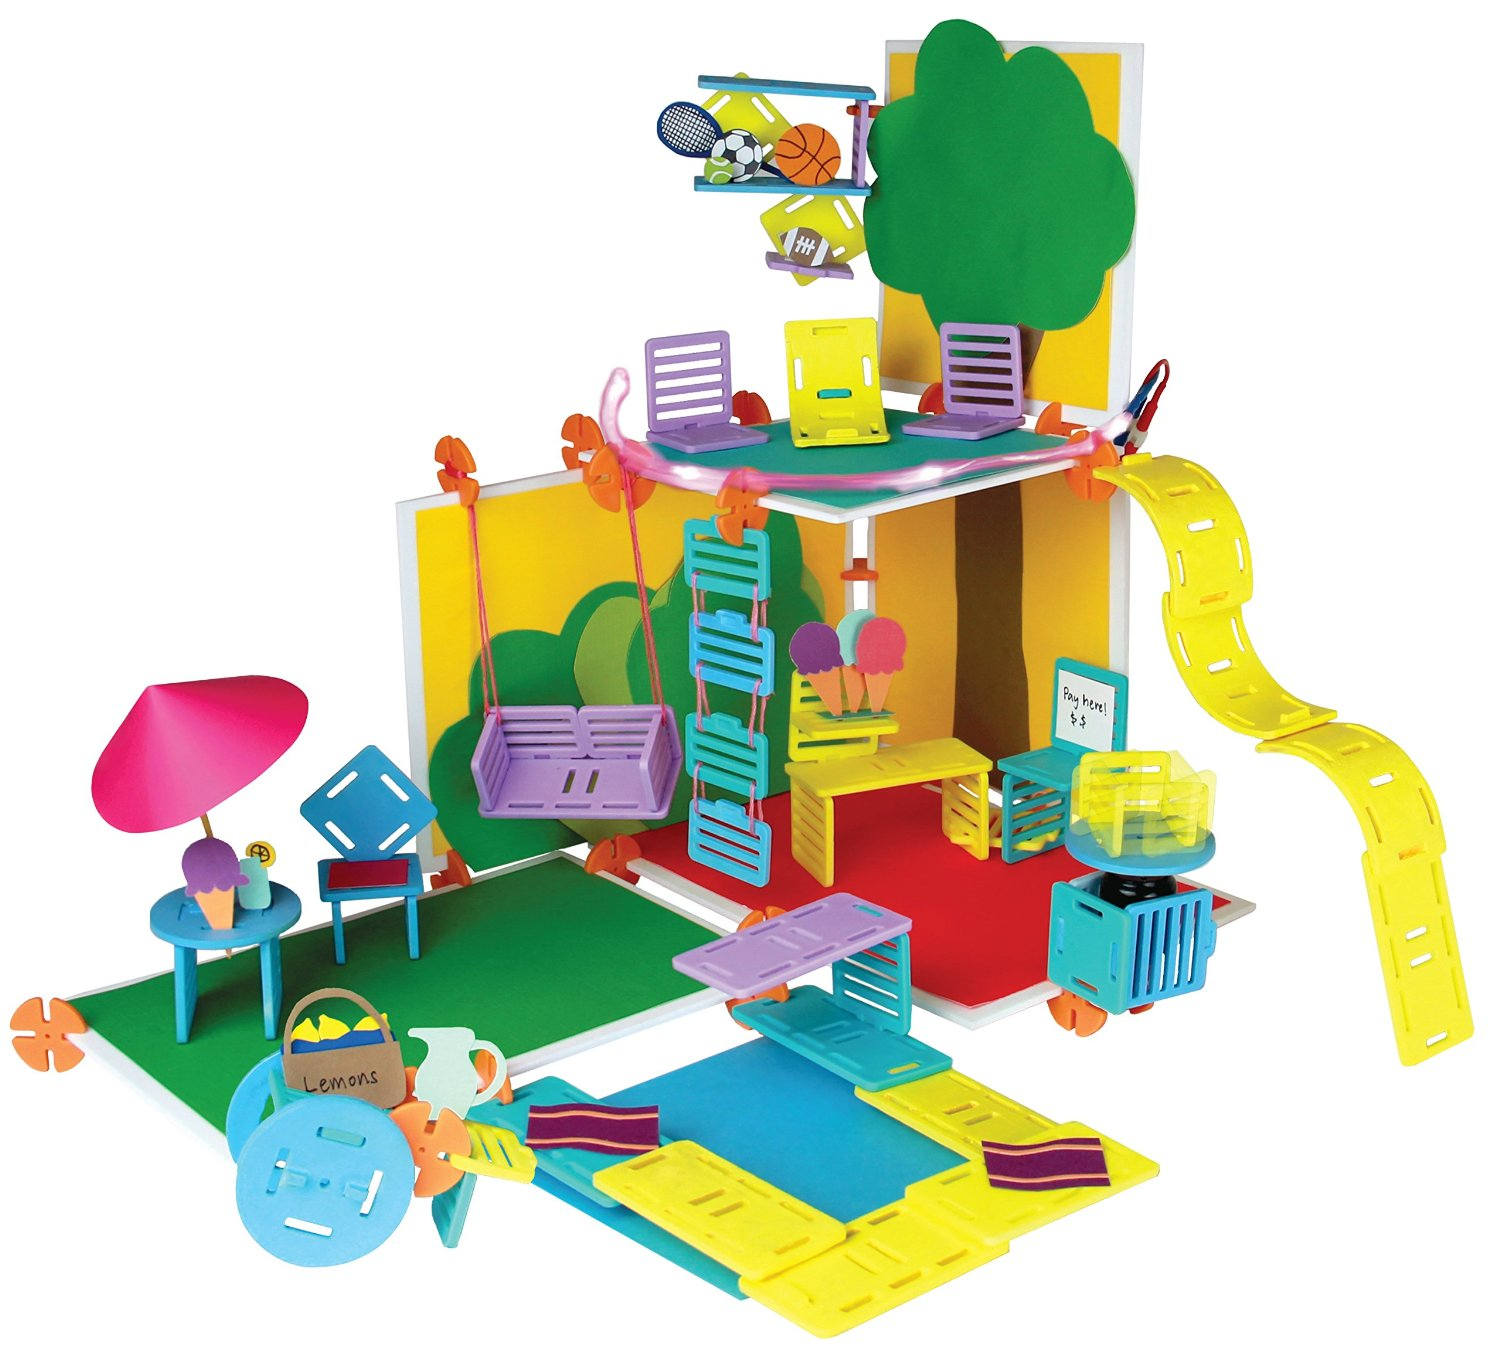 The Top 5 STEM BUILDING Toys for Girls